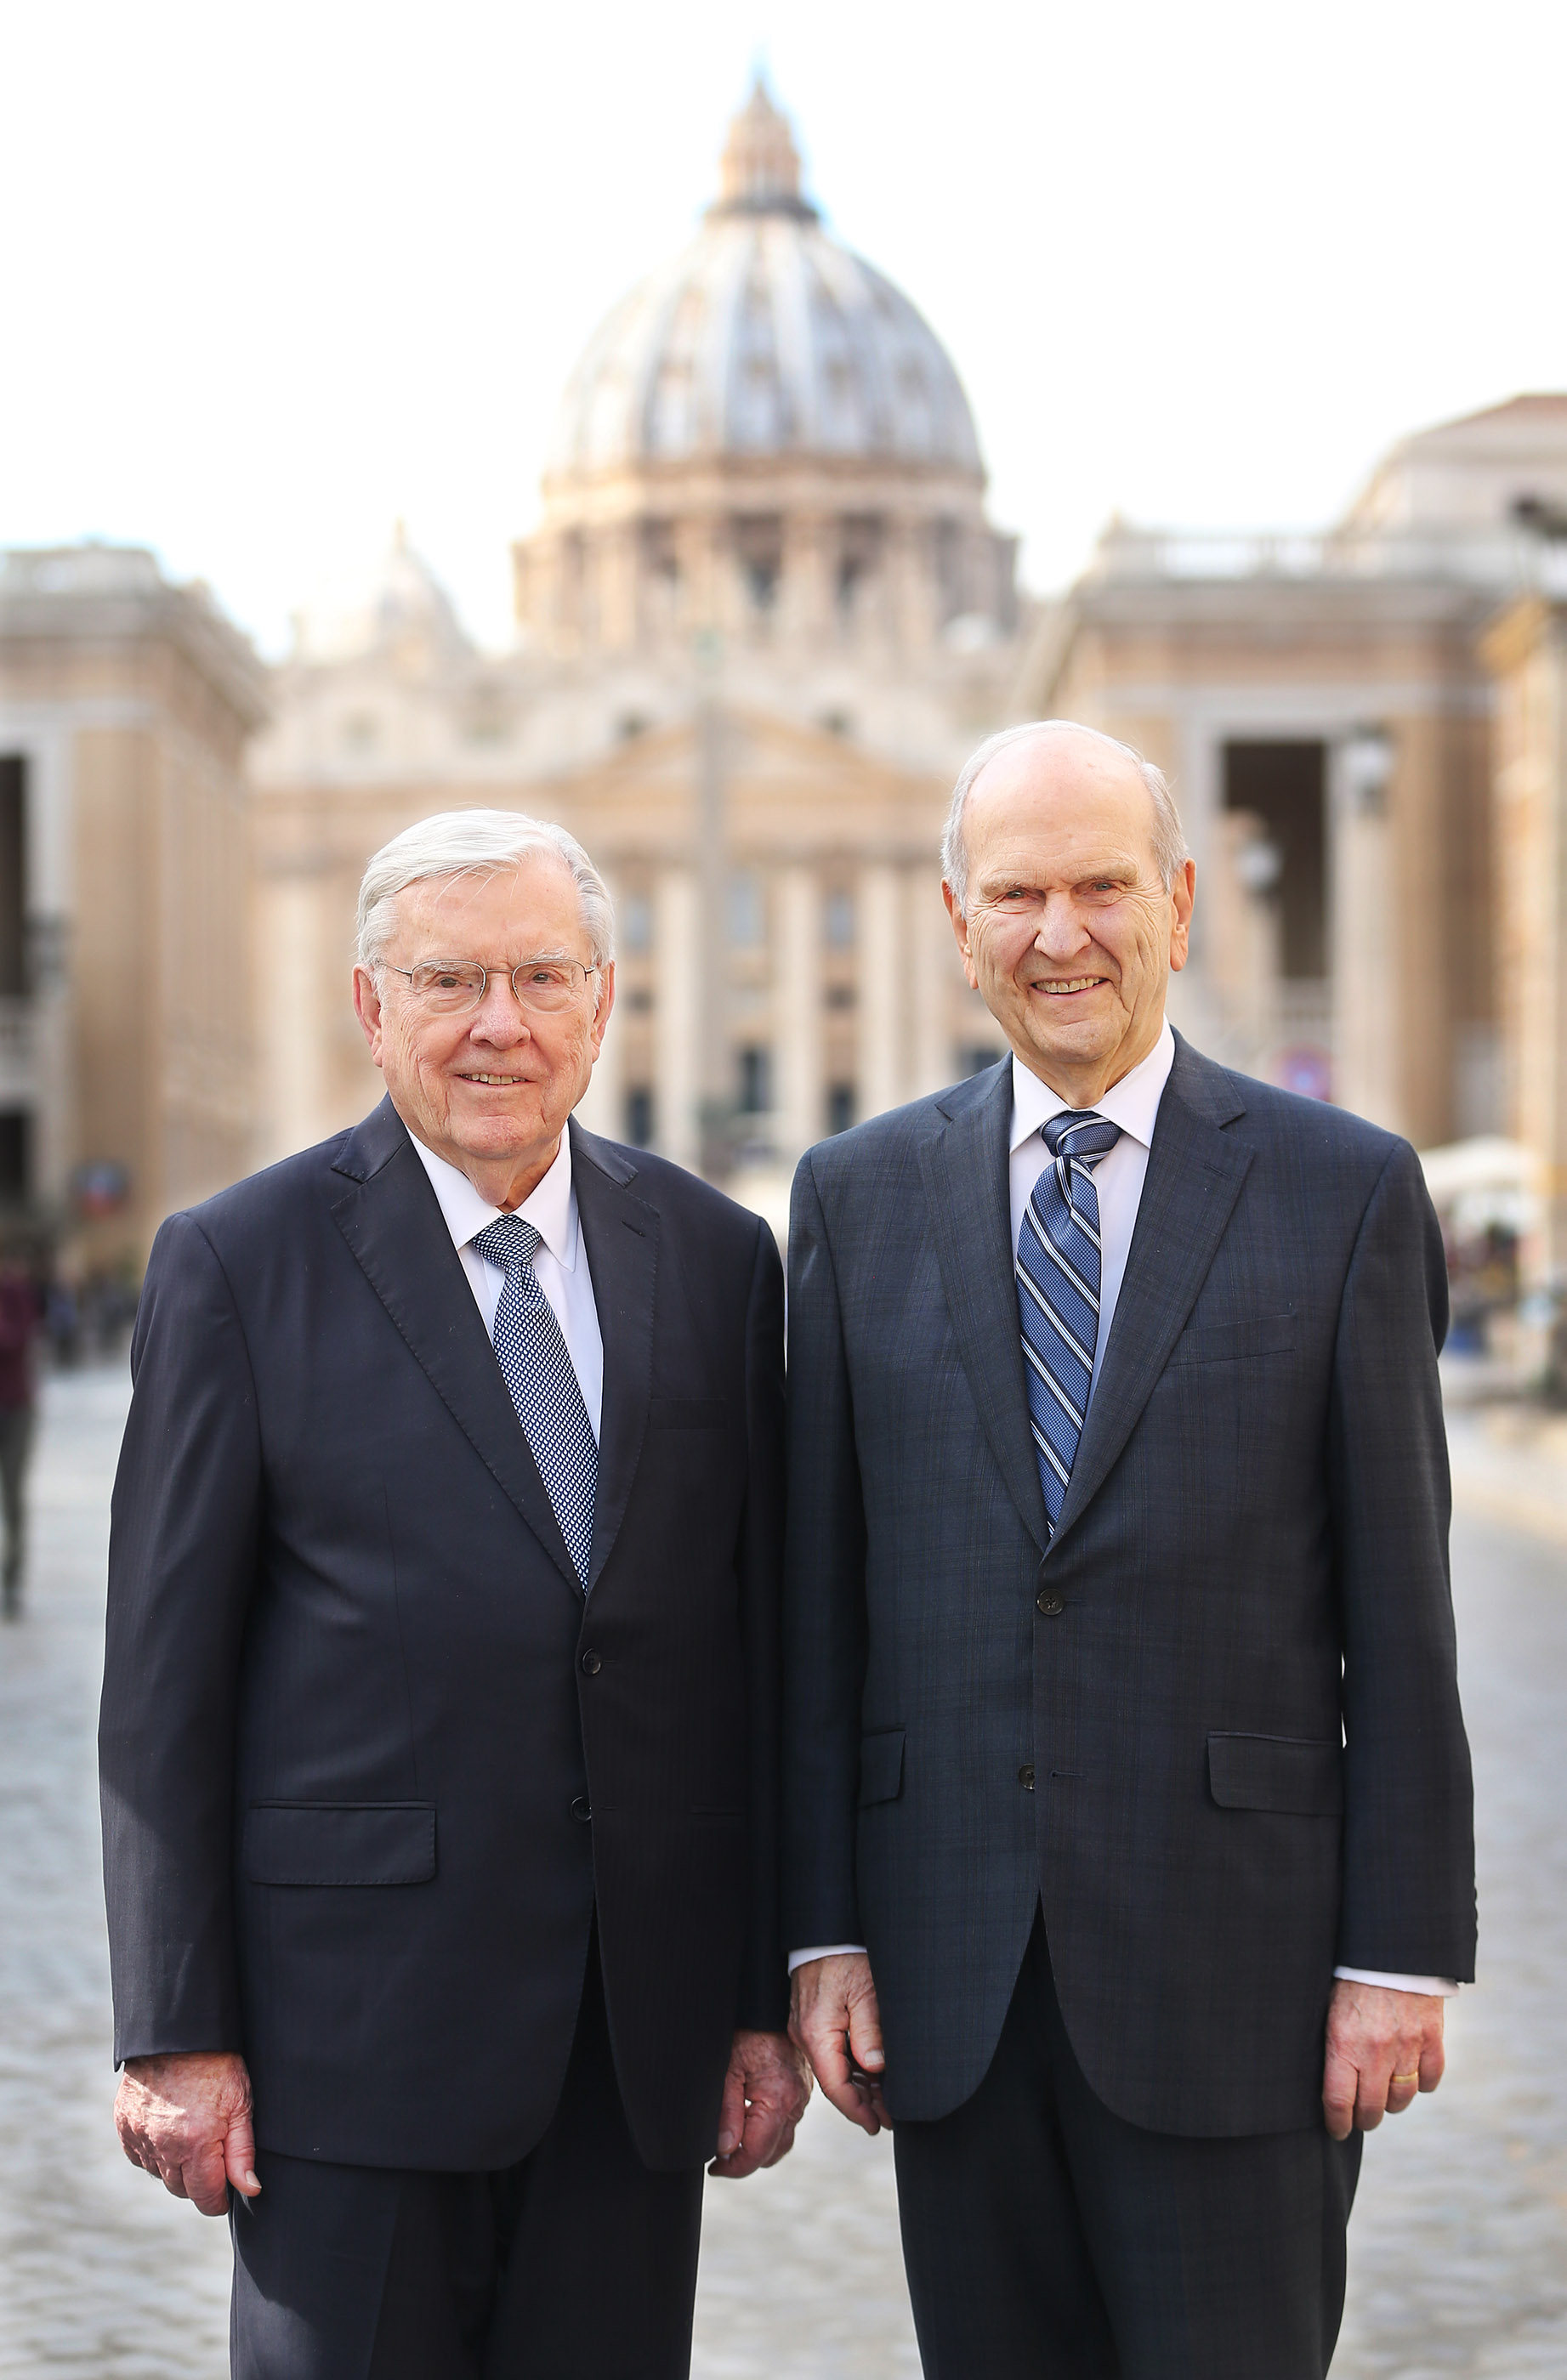 President Russell M. Nelson of The Church of Jesus Christ of Latter-day Saints and President M. Russell Ballard, acting president of the Quorum of the Twelve Apostles, pose near the Vatican in Rome, Italy, on March 9, 2019 after meeting with Pope Francis.